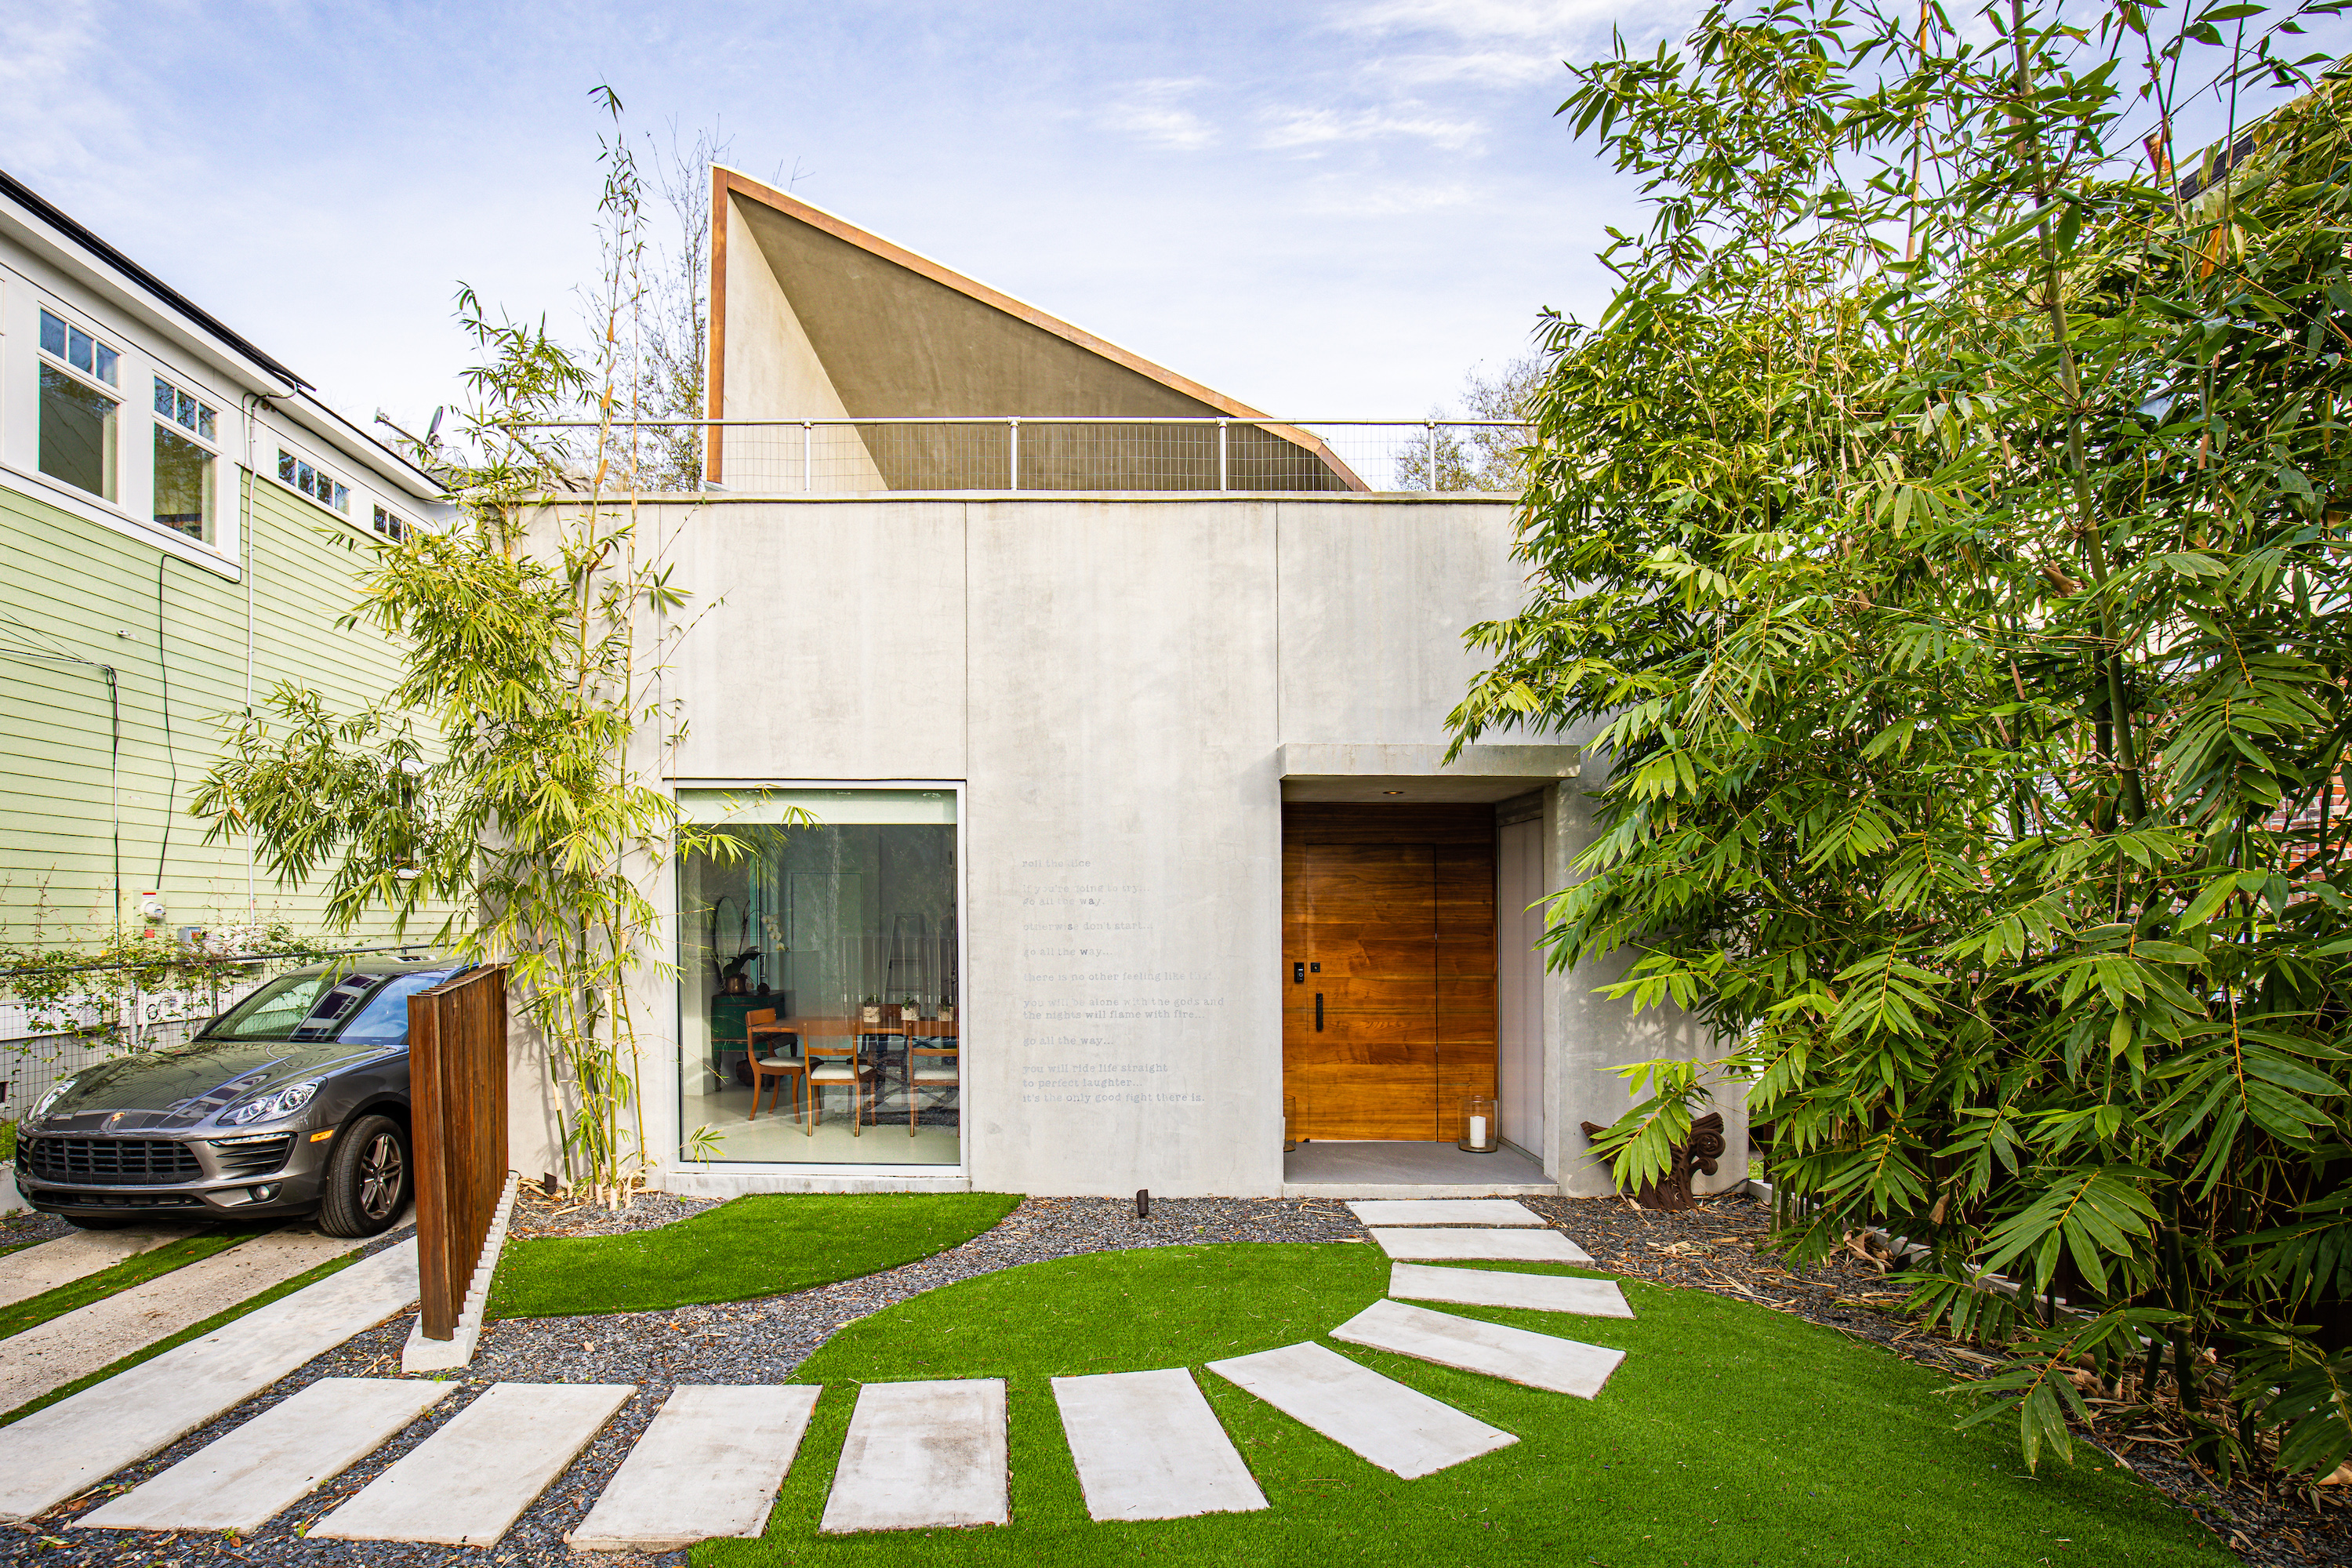 A boxy concrete home features an angled roof and a green yard with cement path.